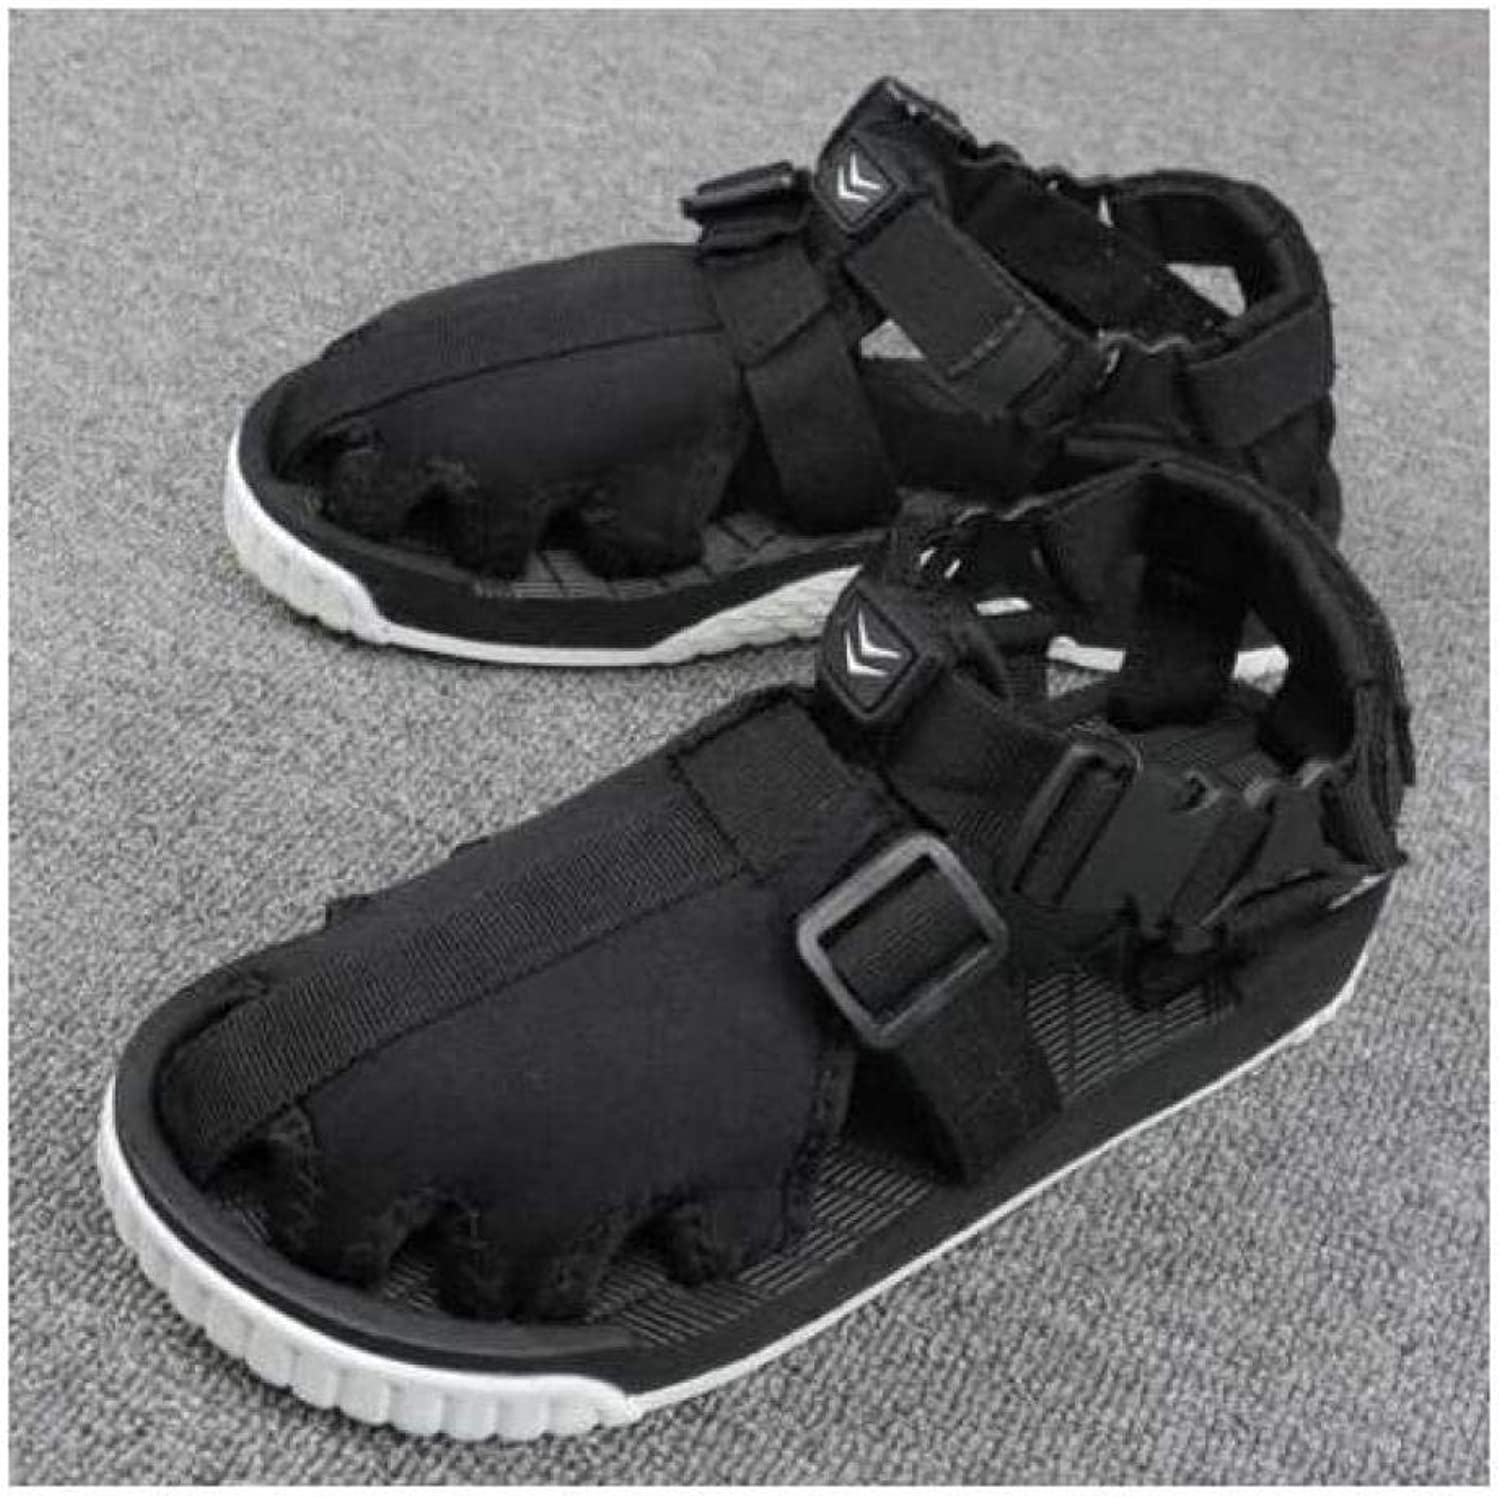 FidgetFidget Mens Sandals Closed Toe Sports Black Beach Outdoor Summer Casual Athletic shoes